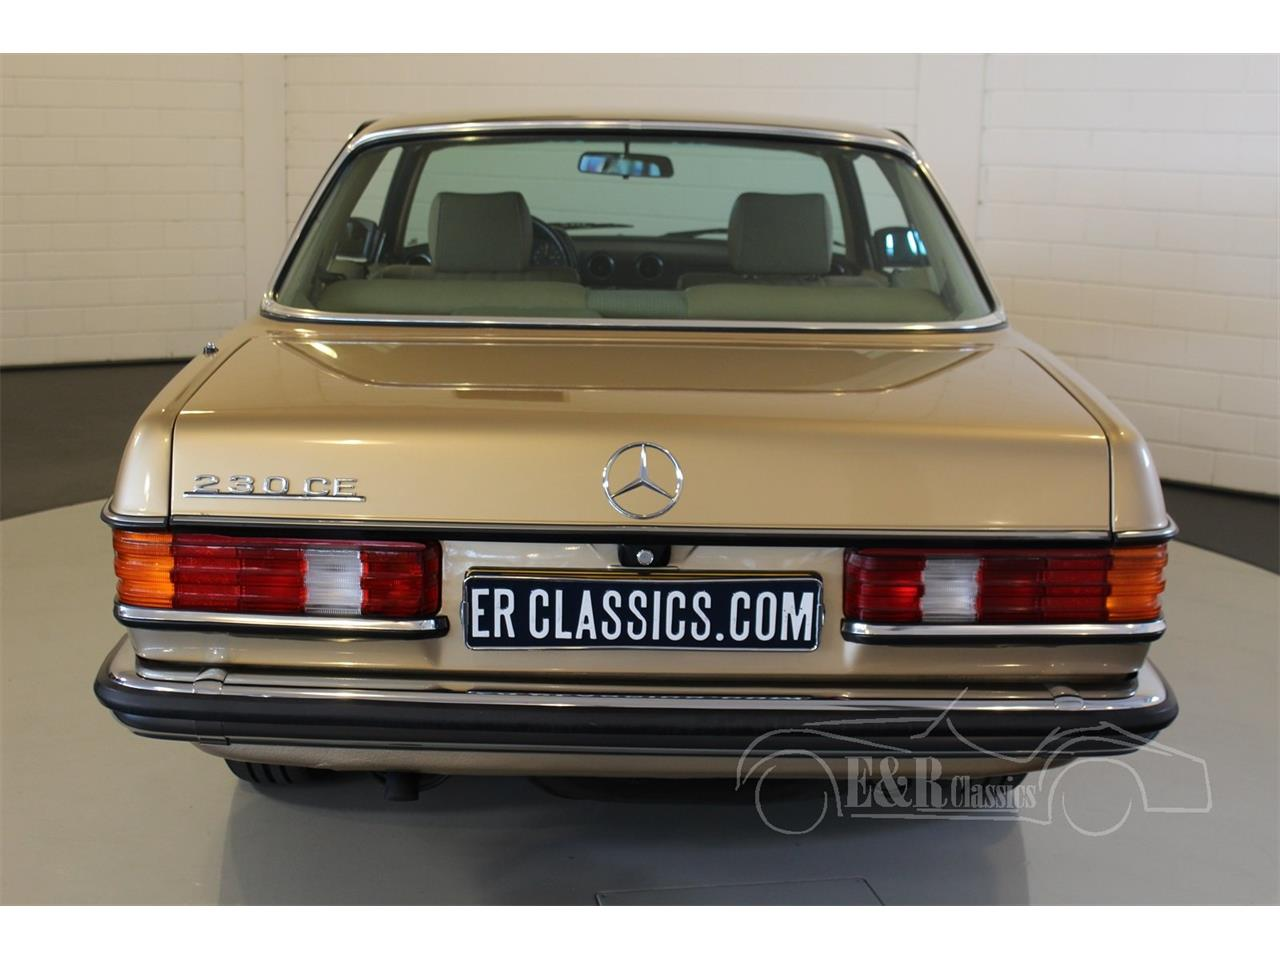 Large Picture of 1984 Mercedes-Benz 230 located in Noord-Brabant - $21,800.00 - MO97